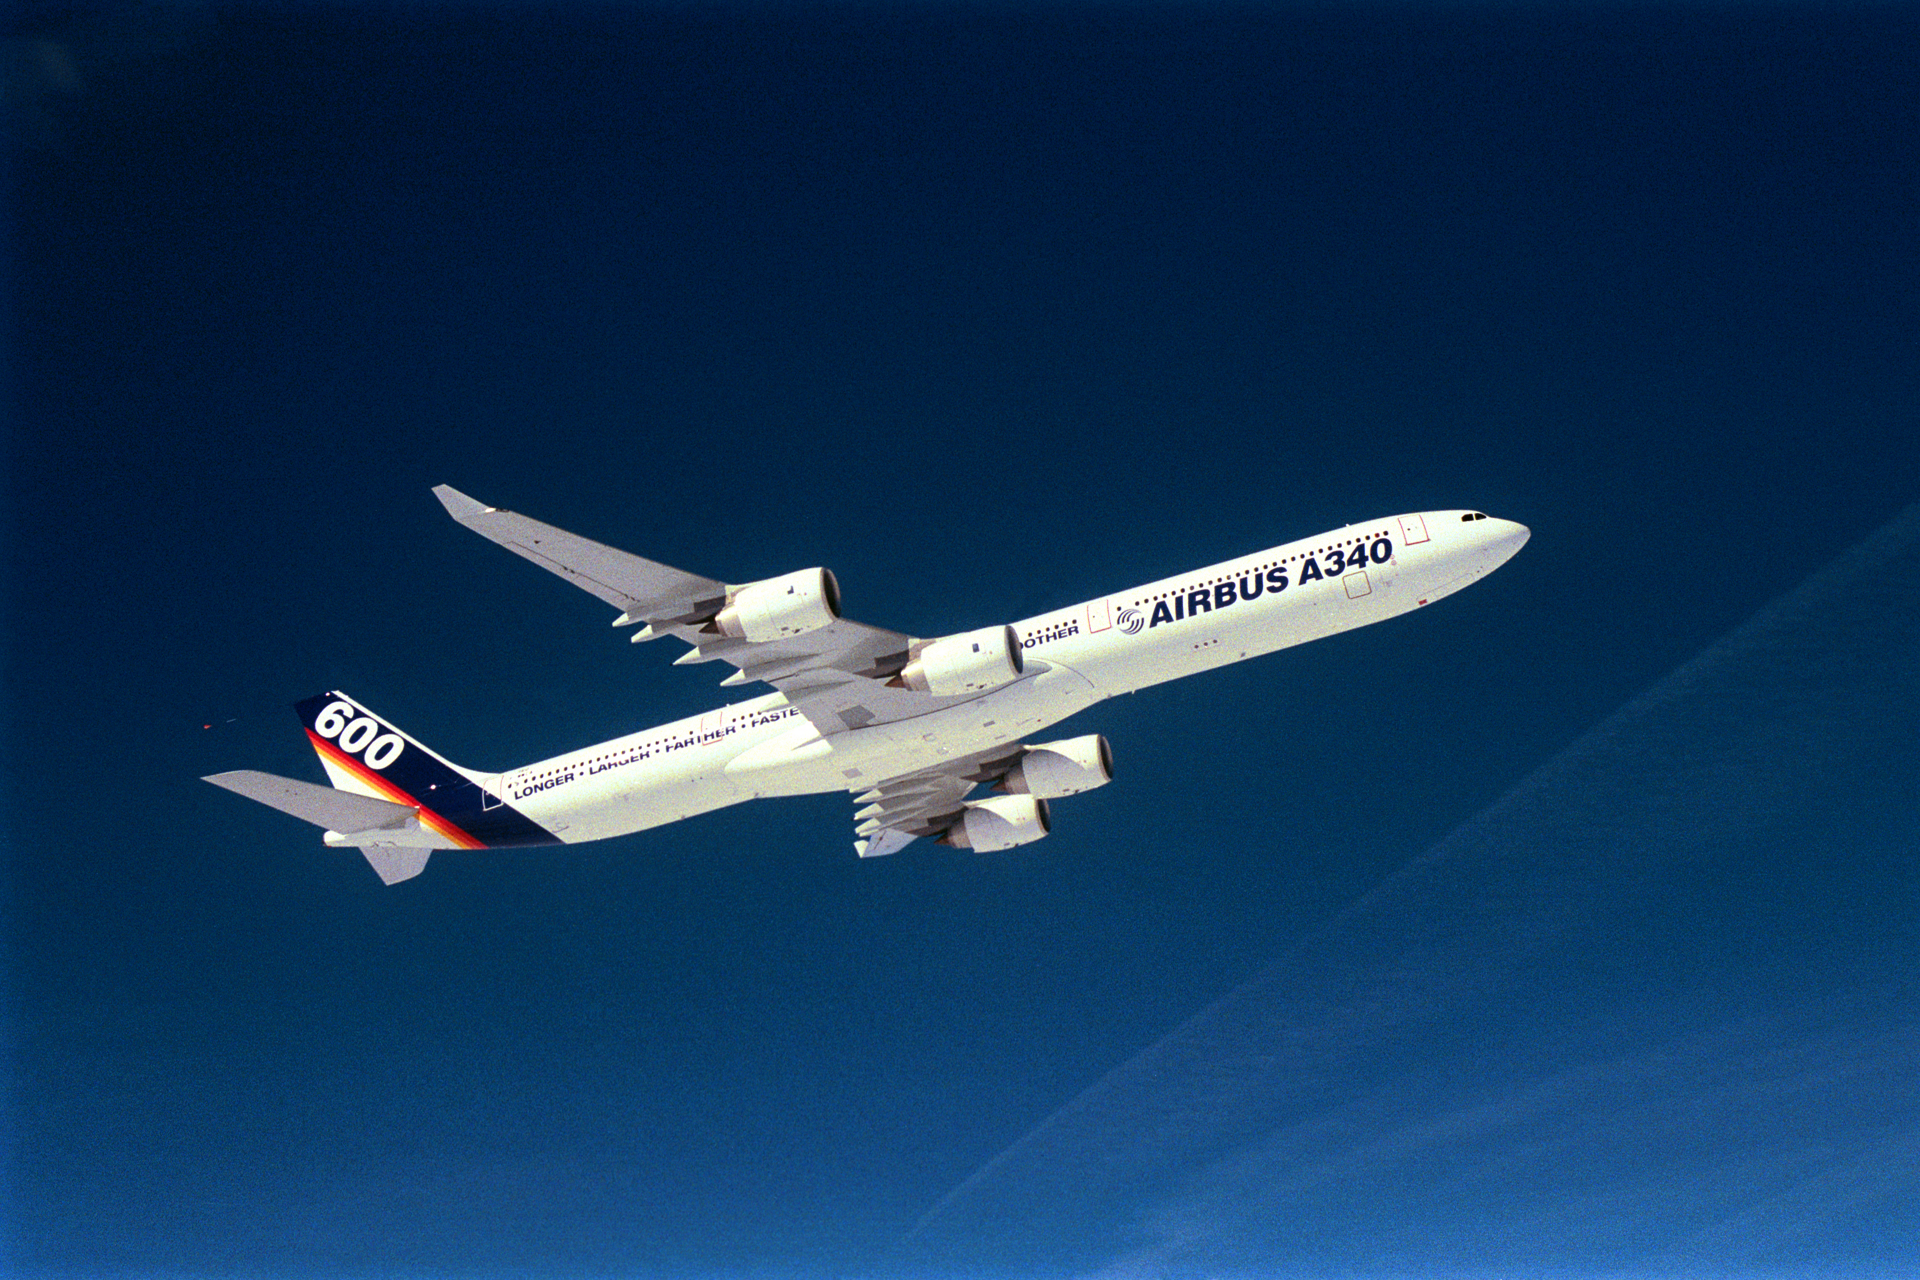 Airbus' first new large jetliner of the 21st century, the 380-seat A340-600, performs its successful 5-hour, 22-minute maiden flight in France on 23 April 2001